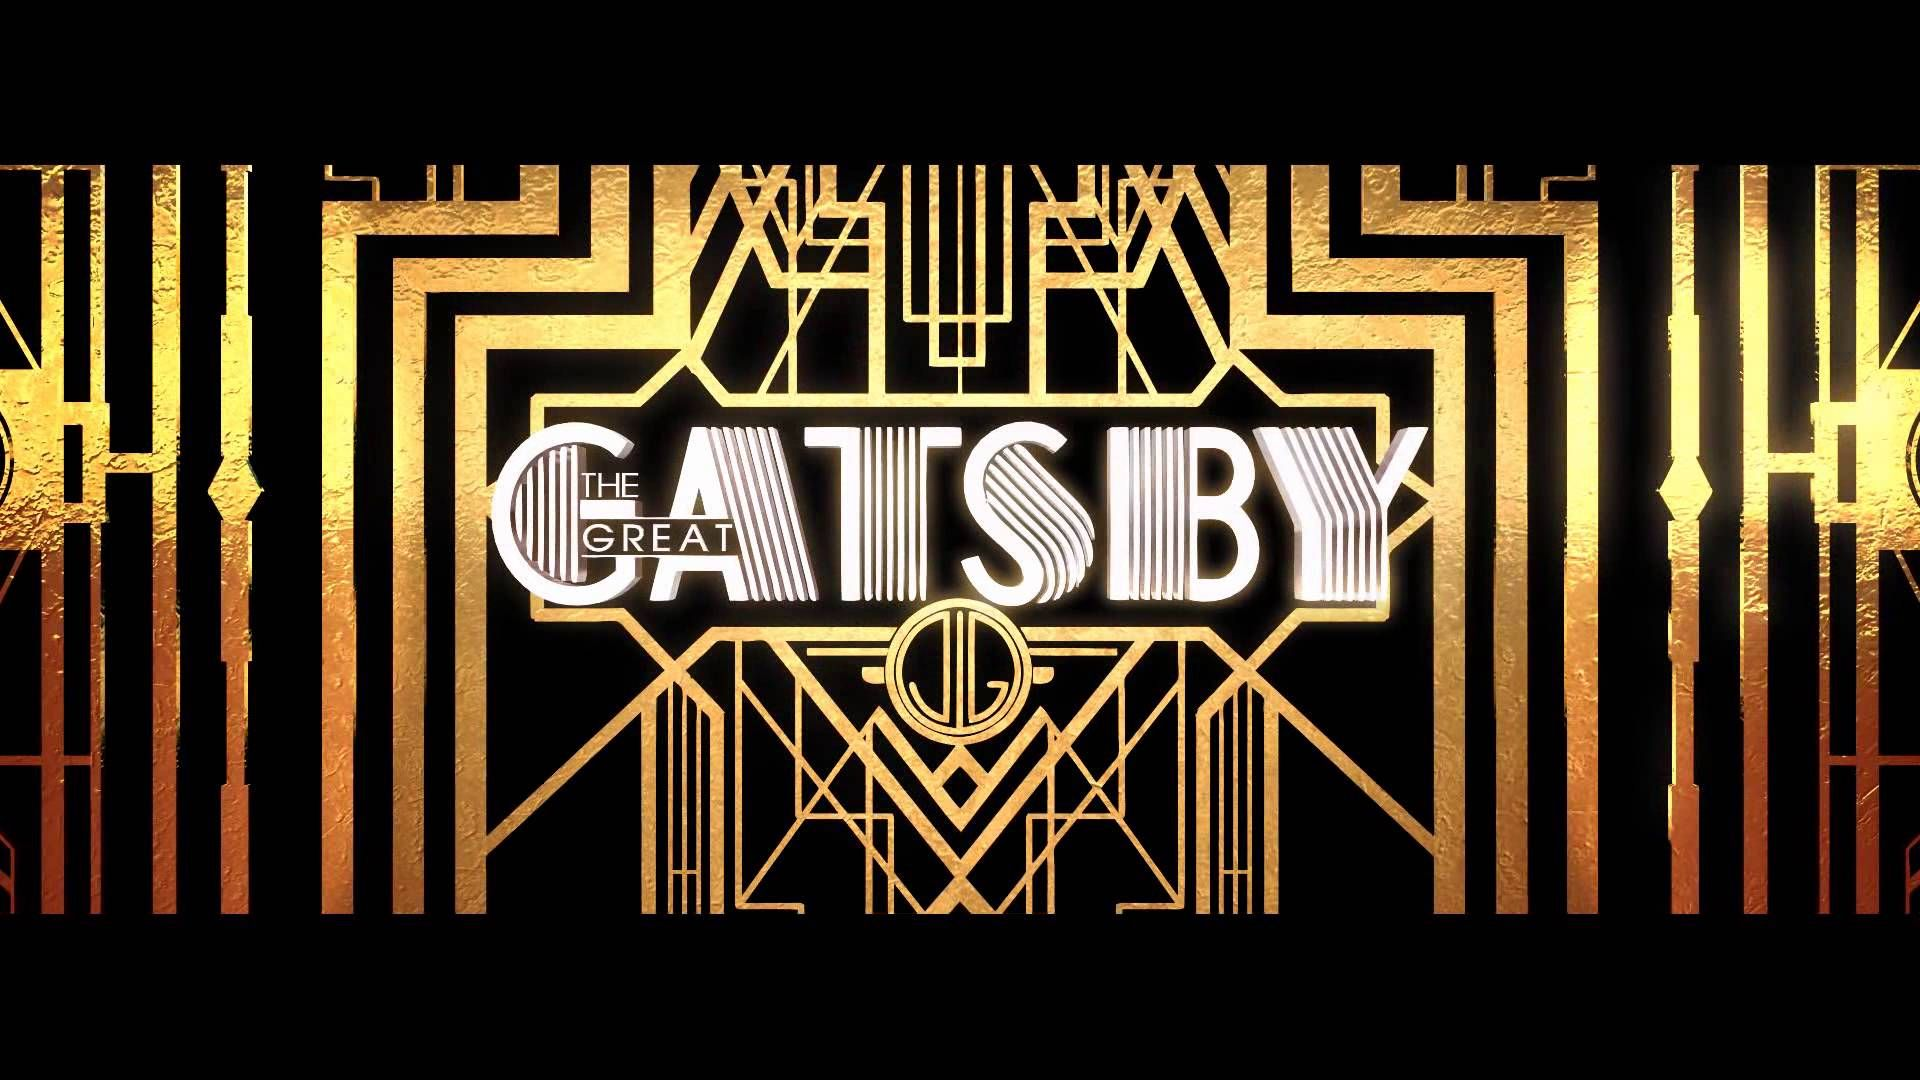 Wallpapers For > Great Gatsby Background Powerpoint   Great gatsby ...